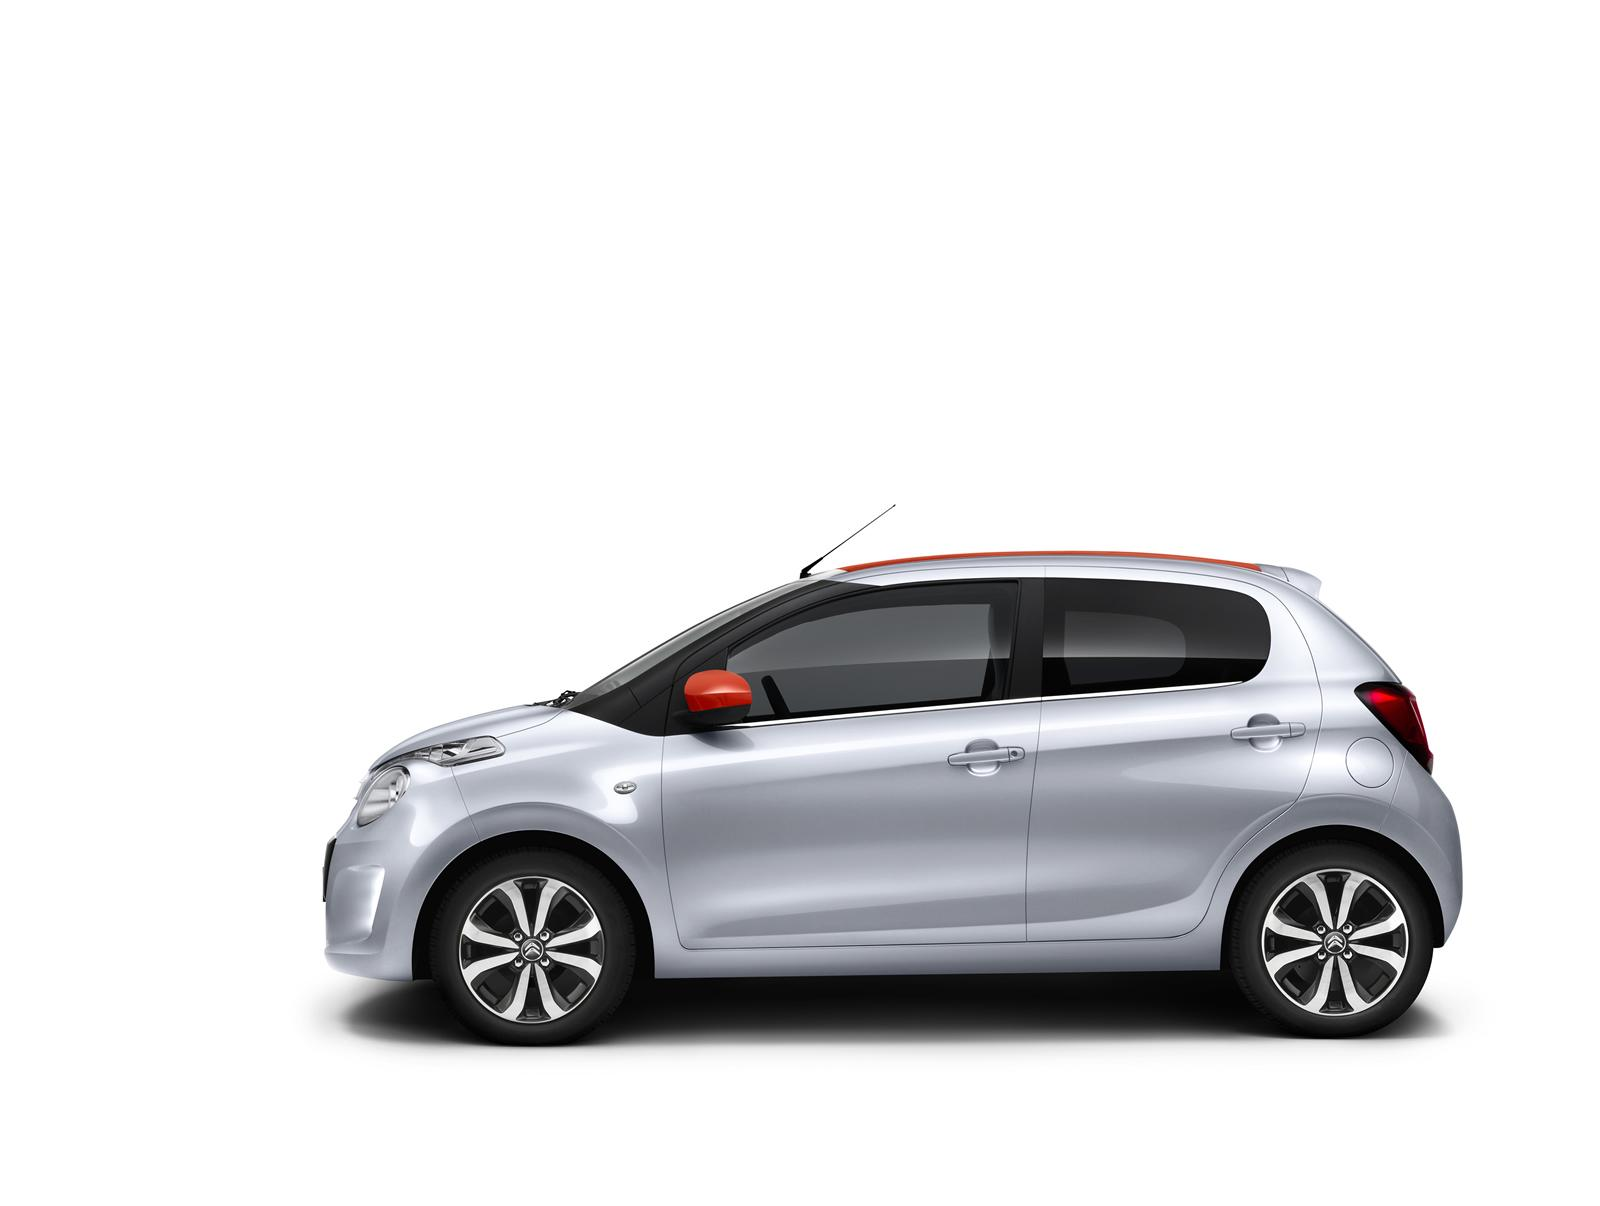 Citroen Reveals new C1 City Car. Introduces Airscape Open-Top Model